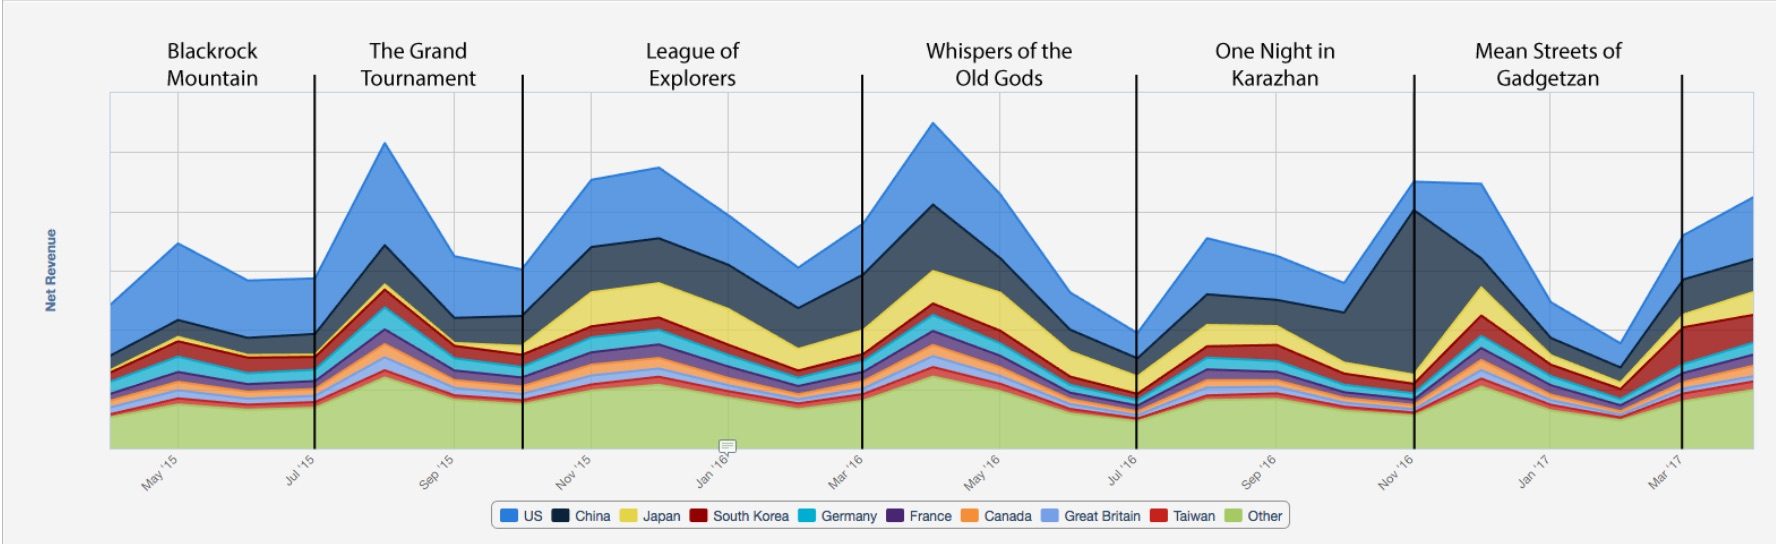 Hearthstone's revenues always spike in the month an expansion comes out, but then decrease steadily until the next release. If players had a reason to keep spending, for example to gift cards to their guild members, engagement and spending would likely not drop quite so dramatically between content drops.